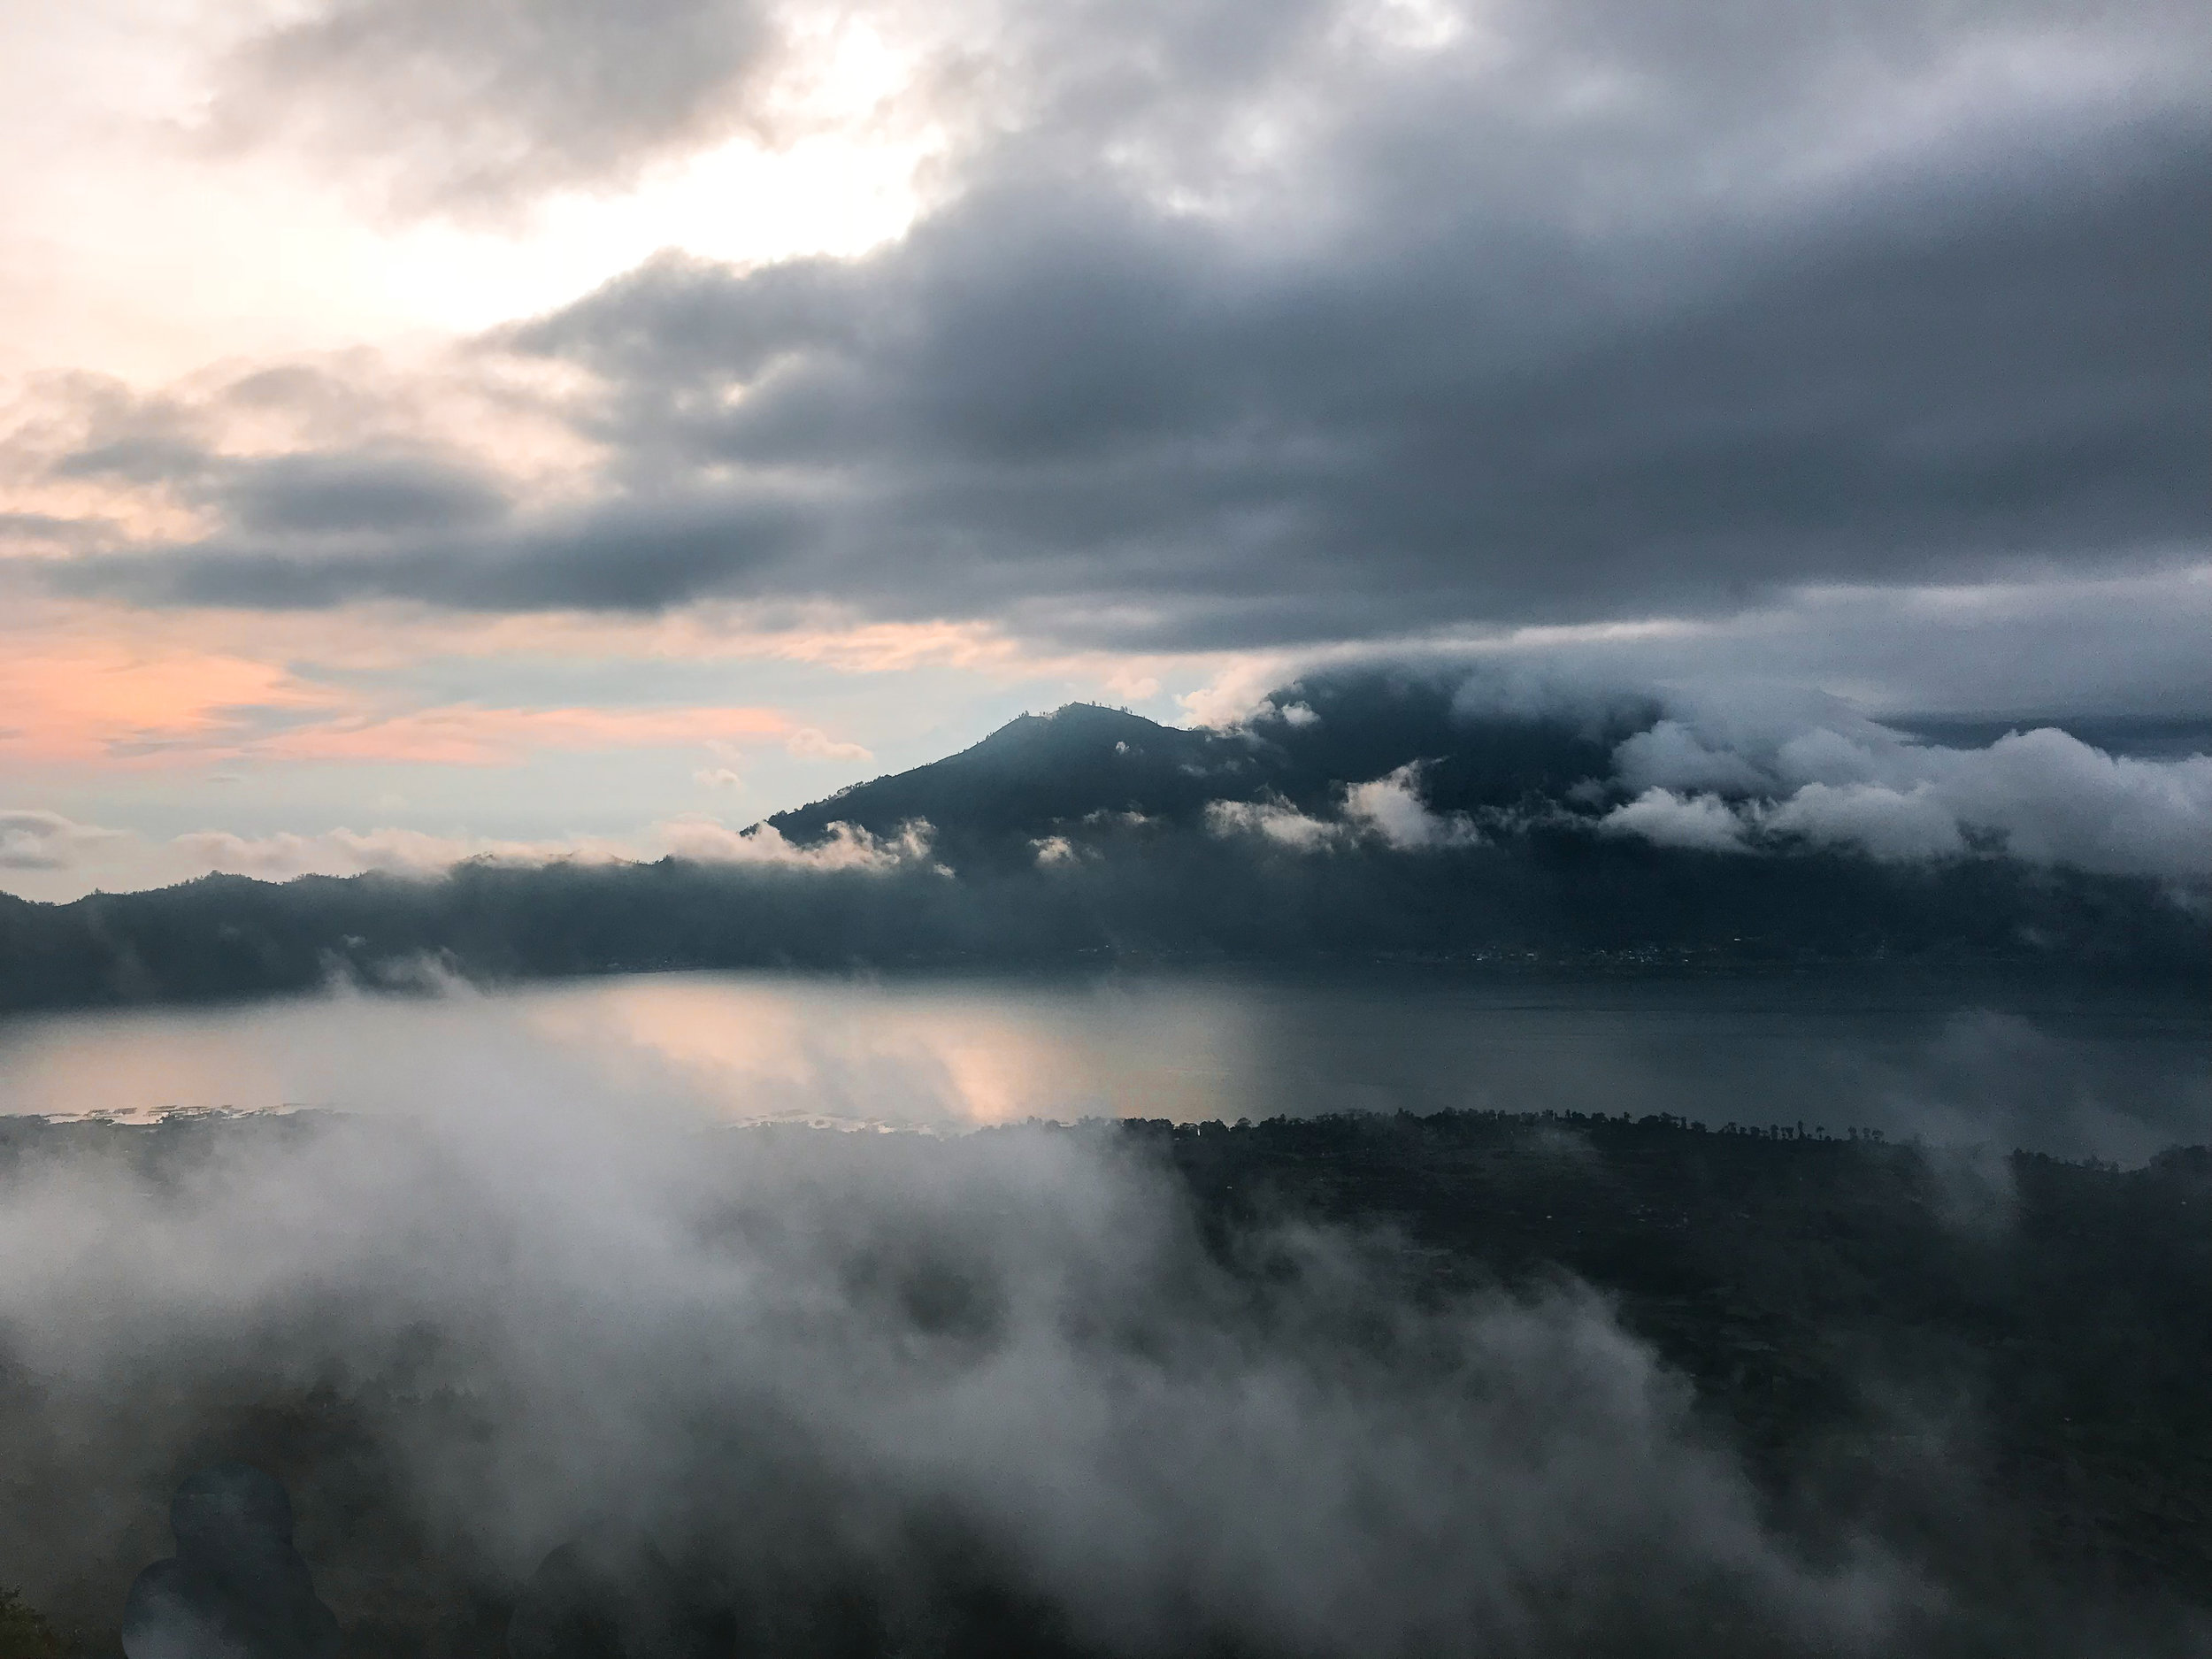 View from the top of Mount Batur in Bali, Indonesia